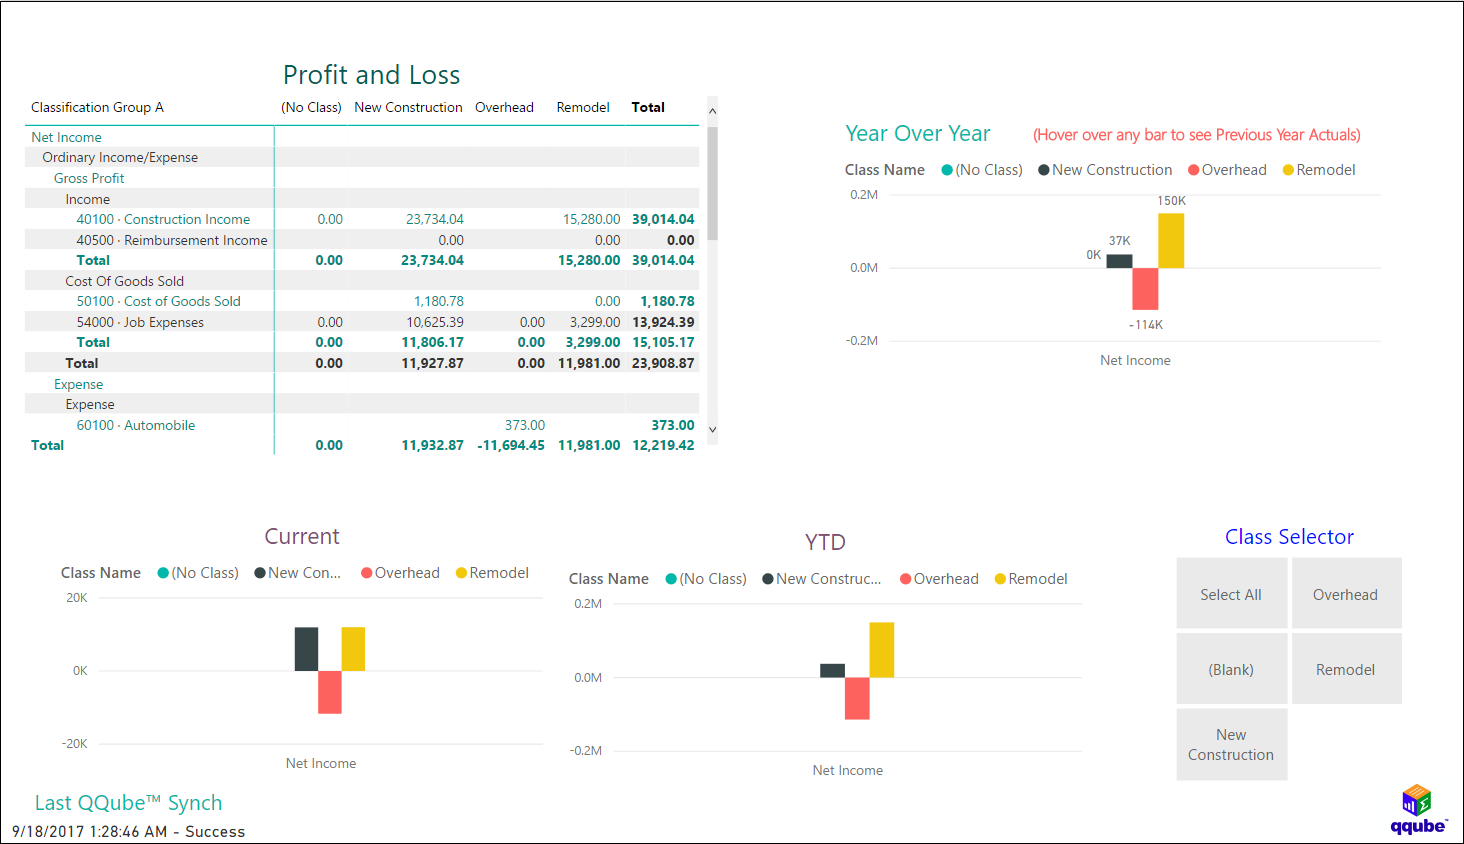 QQube and Power BI - Profit and Loss by Class (Comparison)